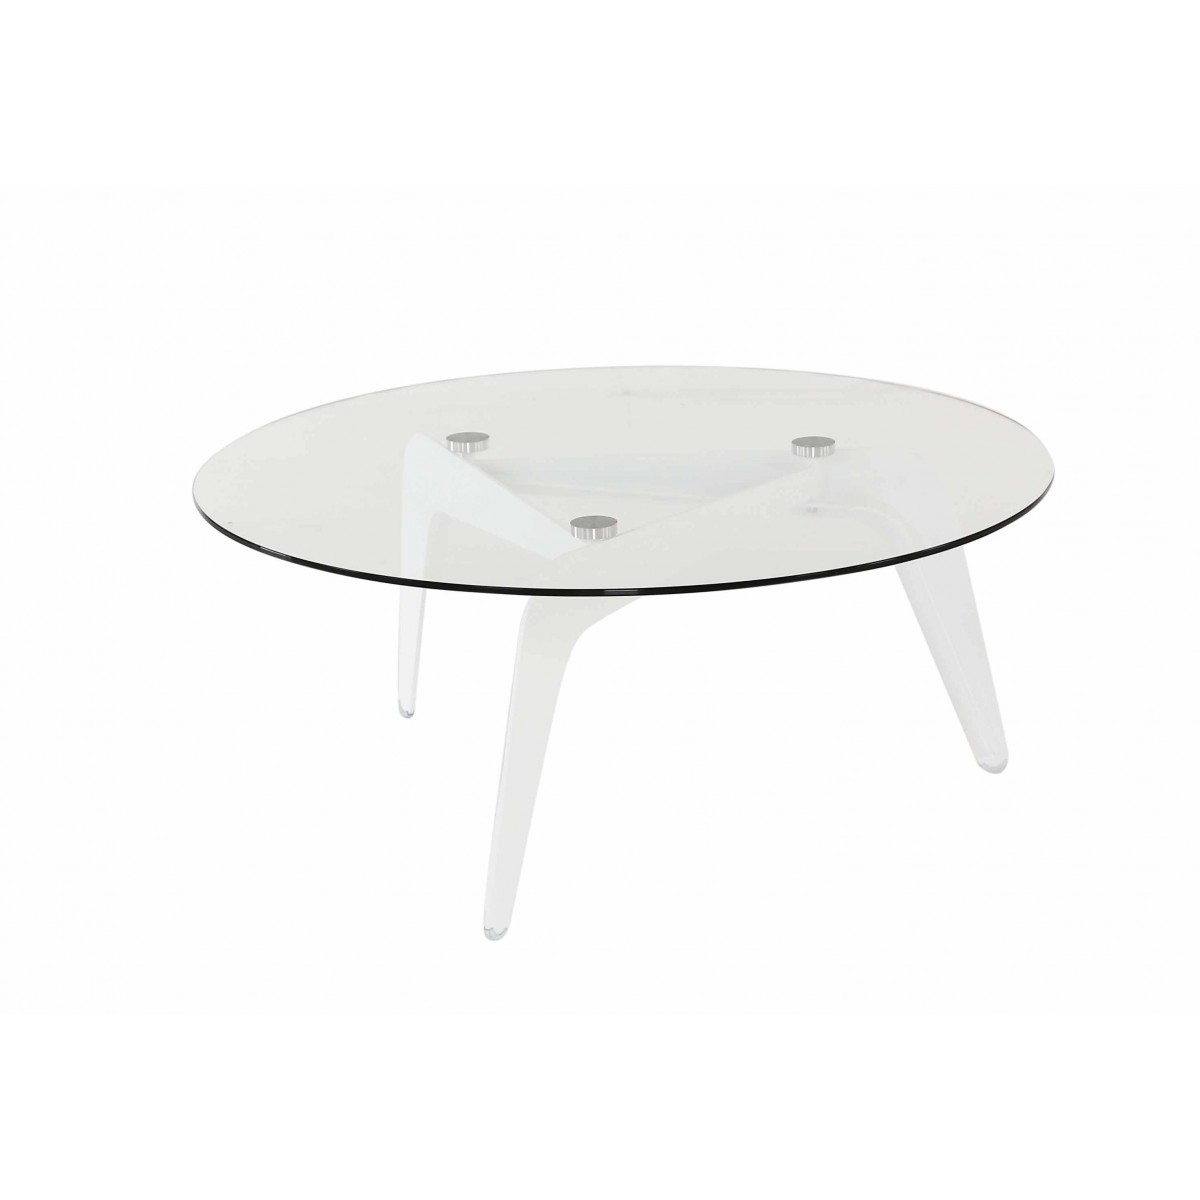 Table basse ronde en verre design mooviin - Table basse metal ronde ...